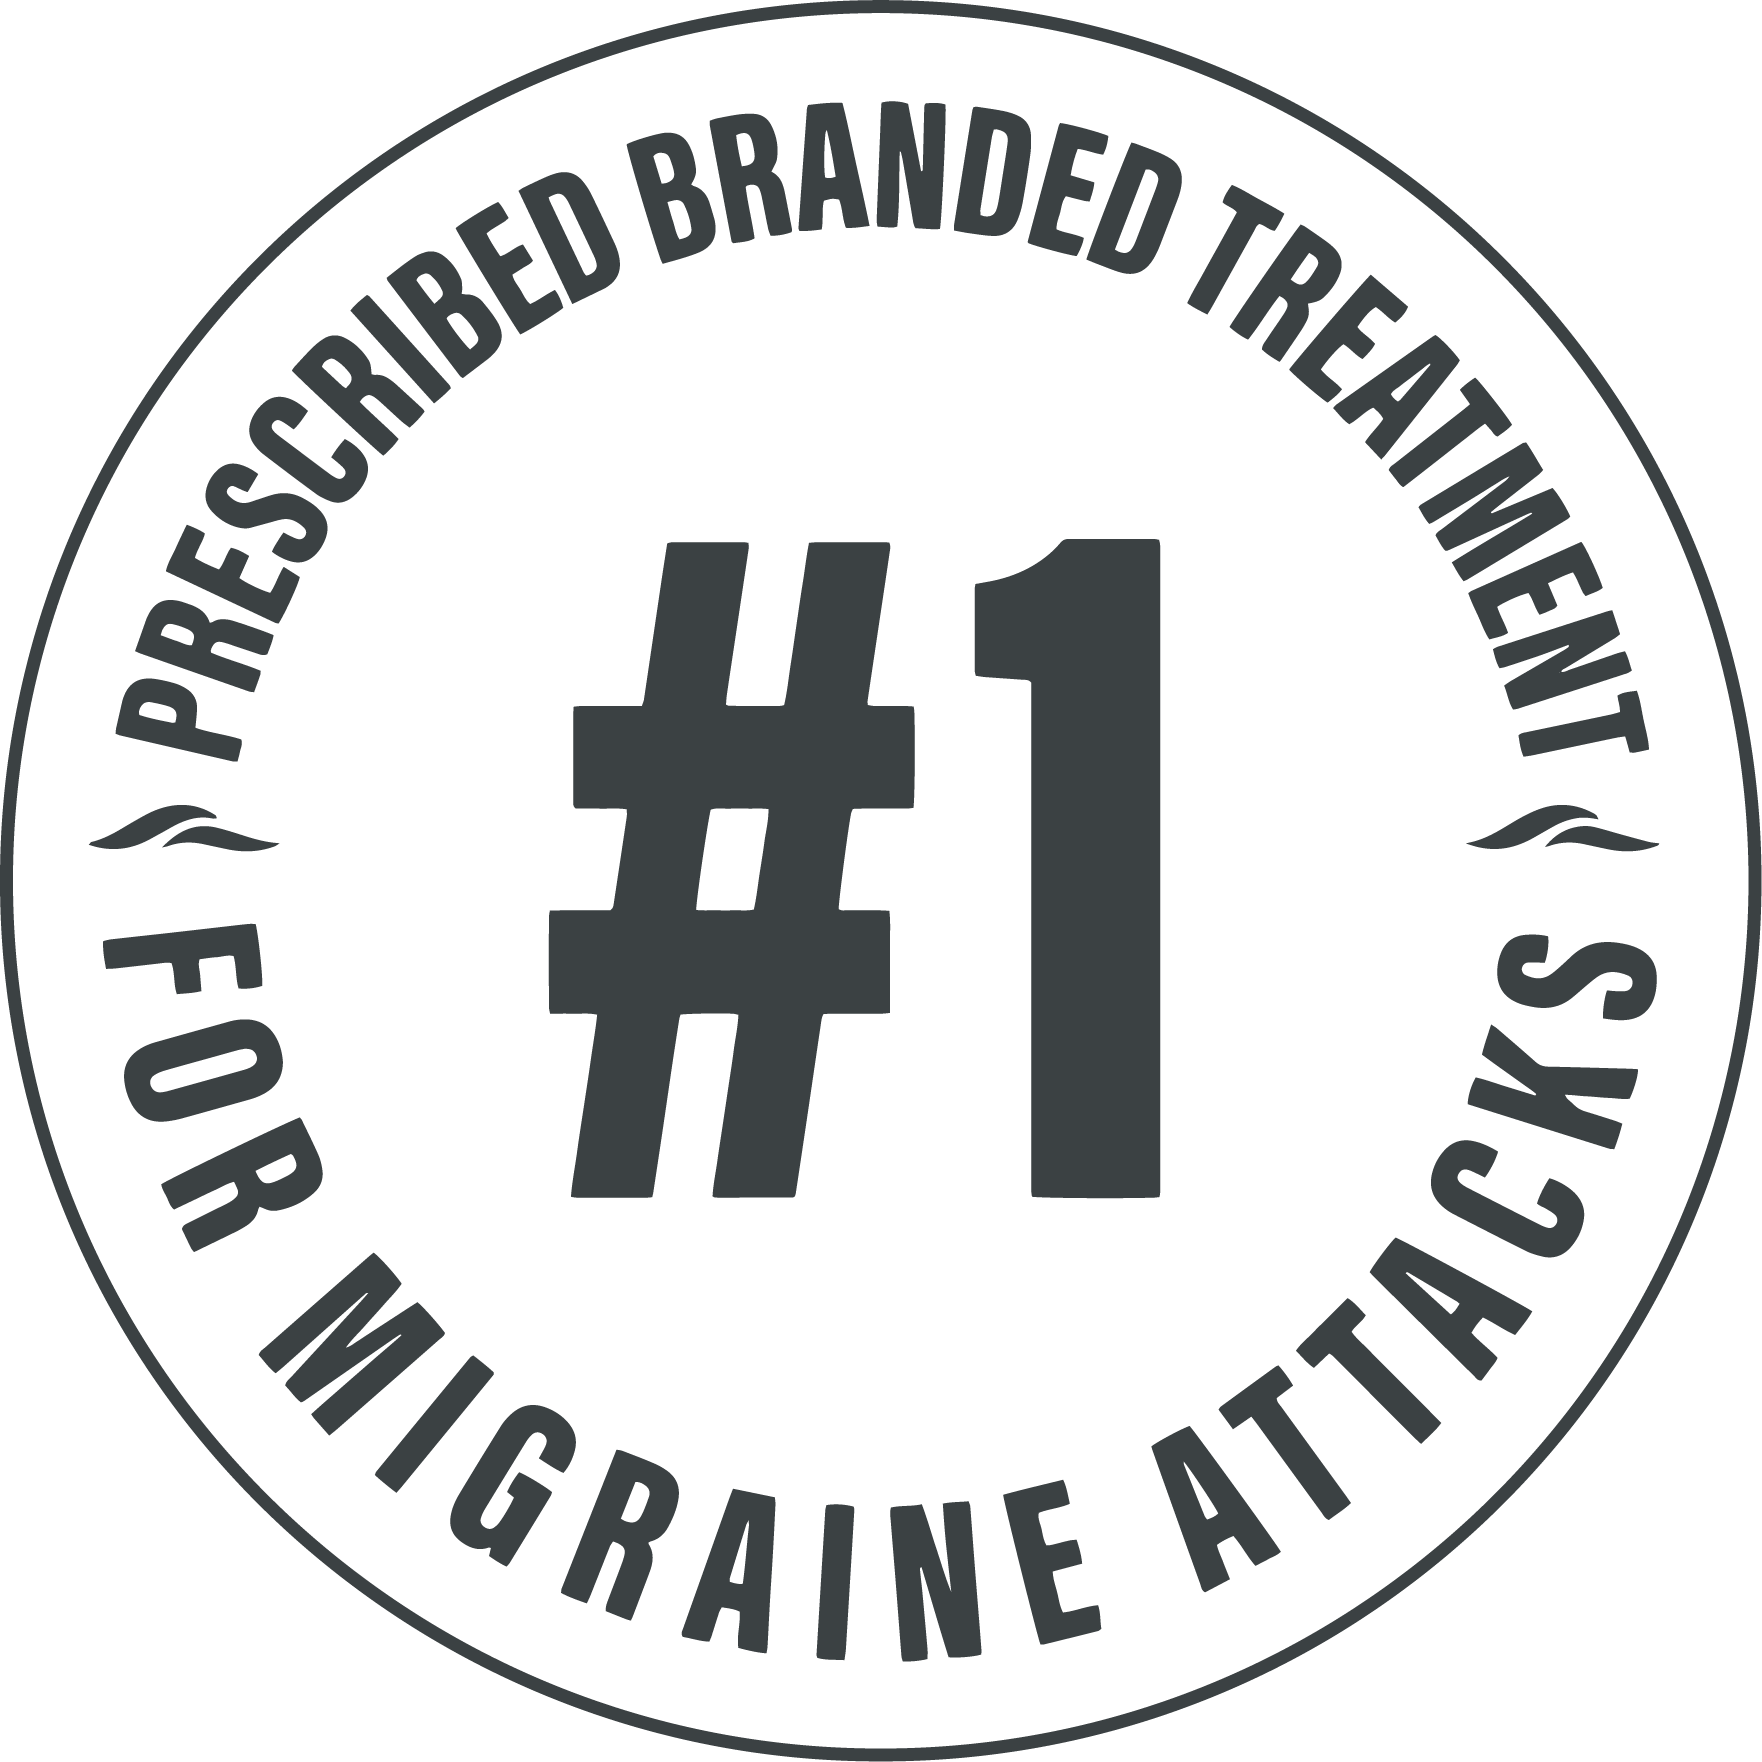 Number 1 prescribed branded treatment for migraine attacks icon